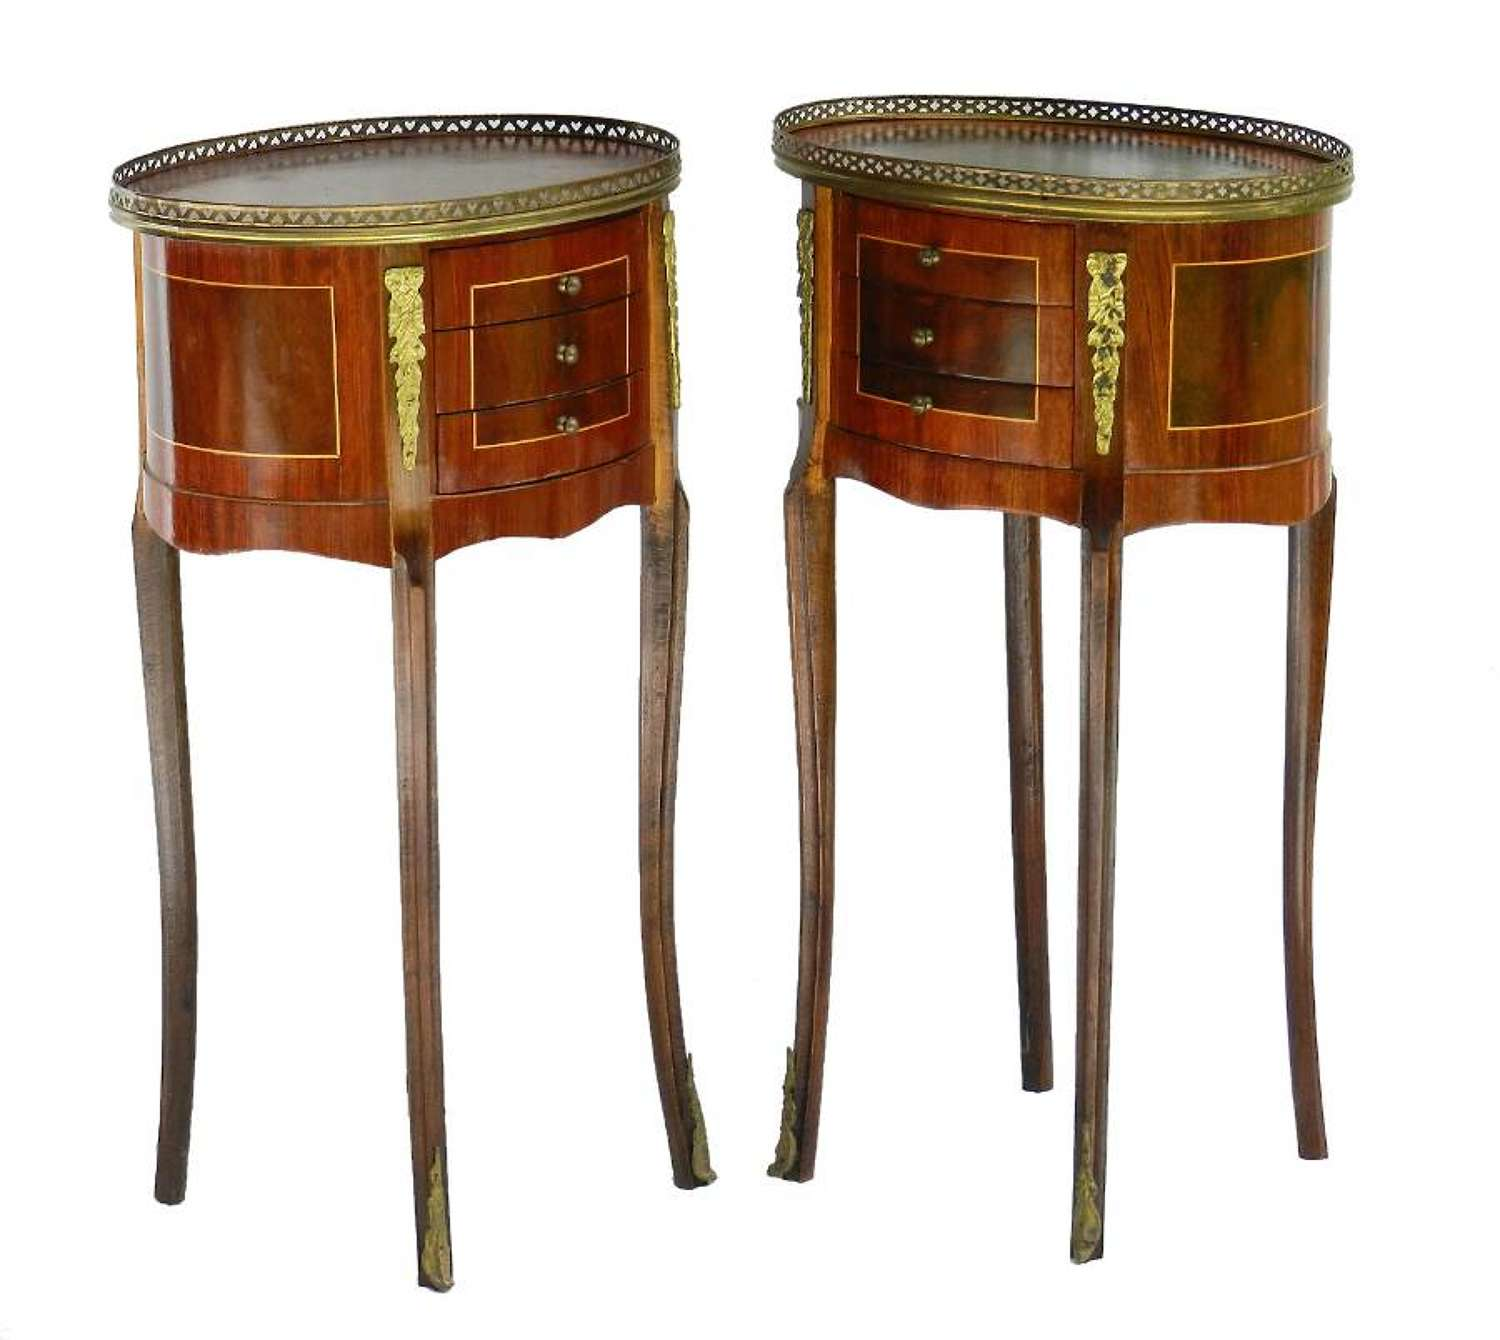 Pair of French Nightstands Side Cabinets Bedside Tables Louis XVI, circa 1920s